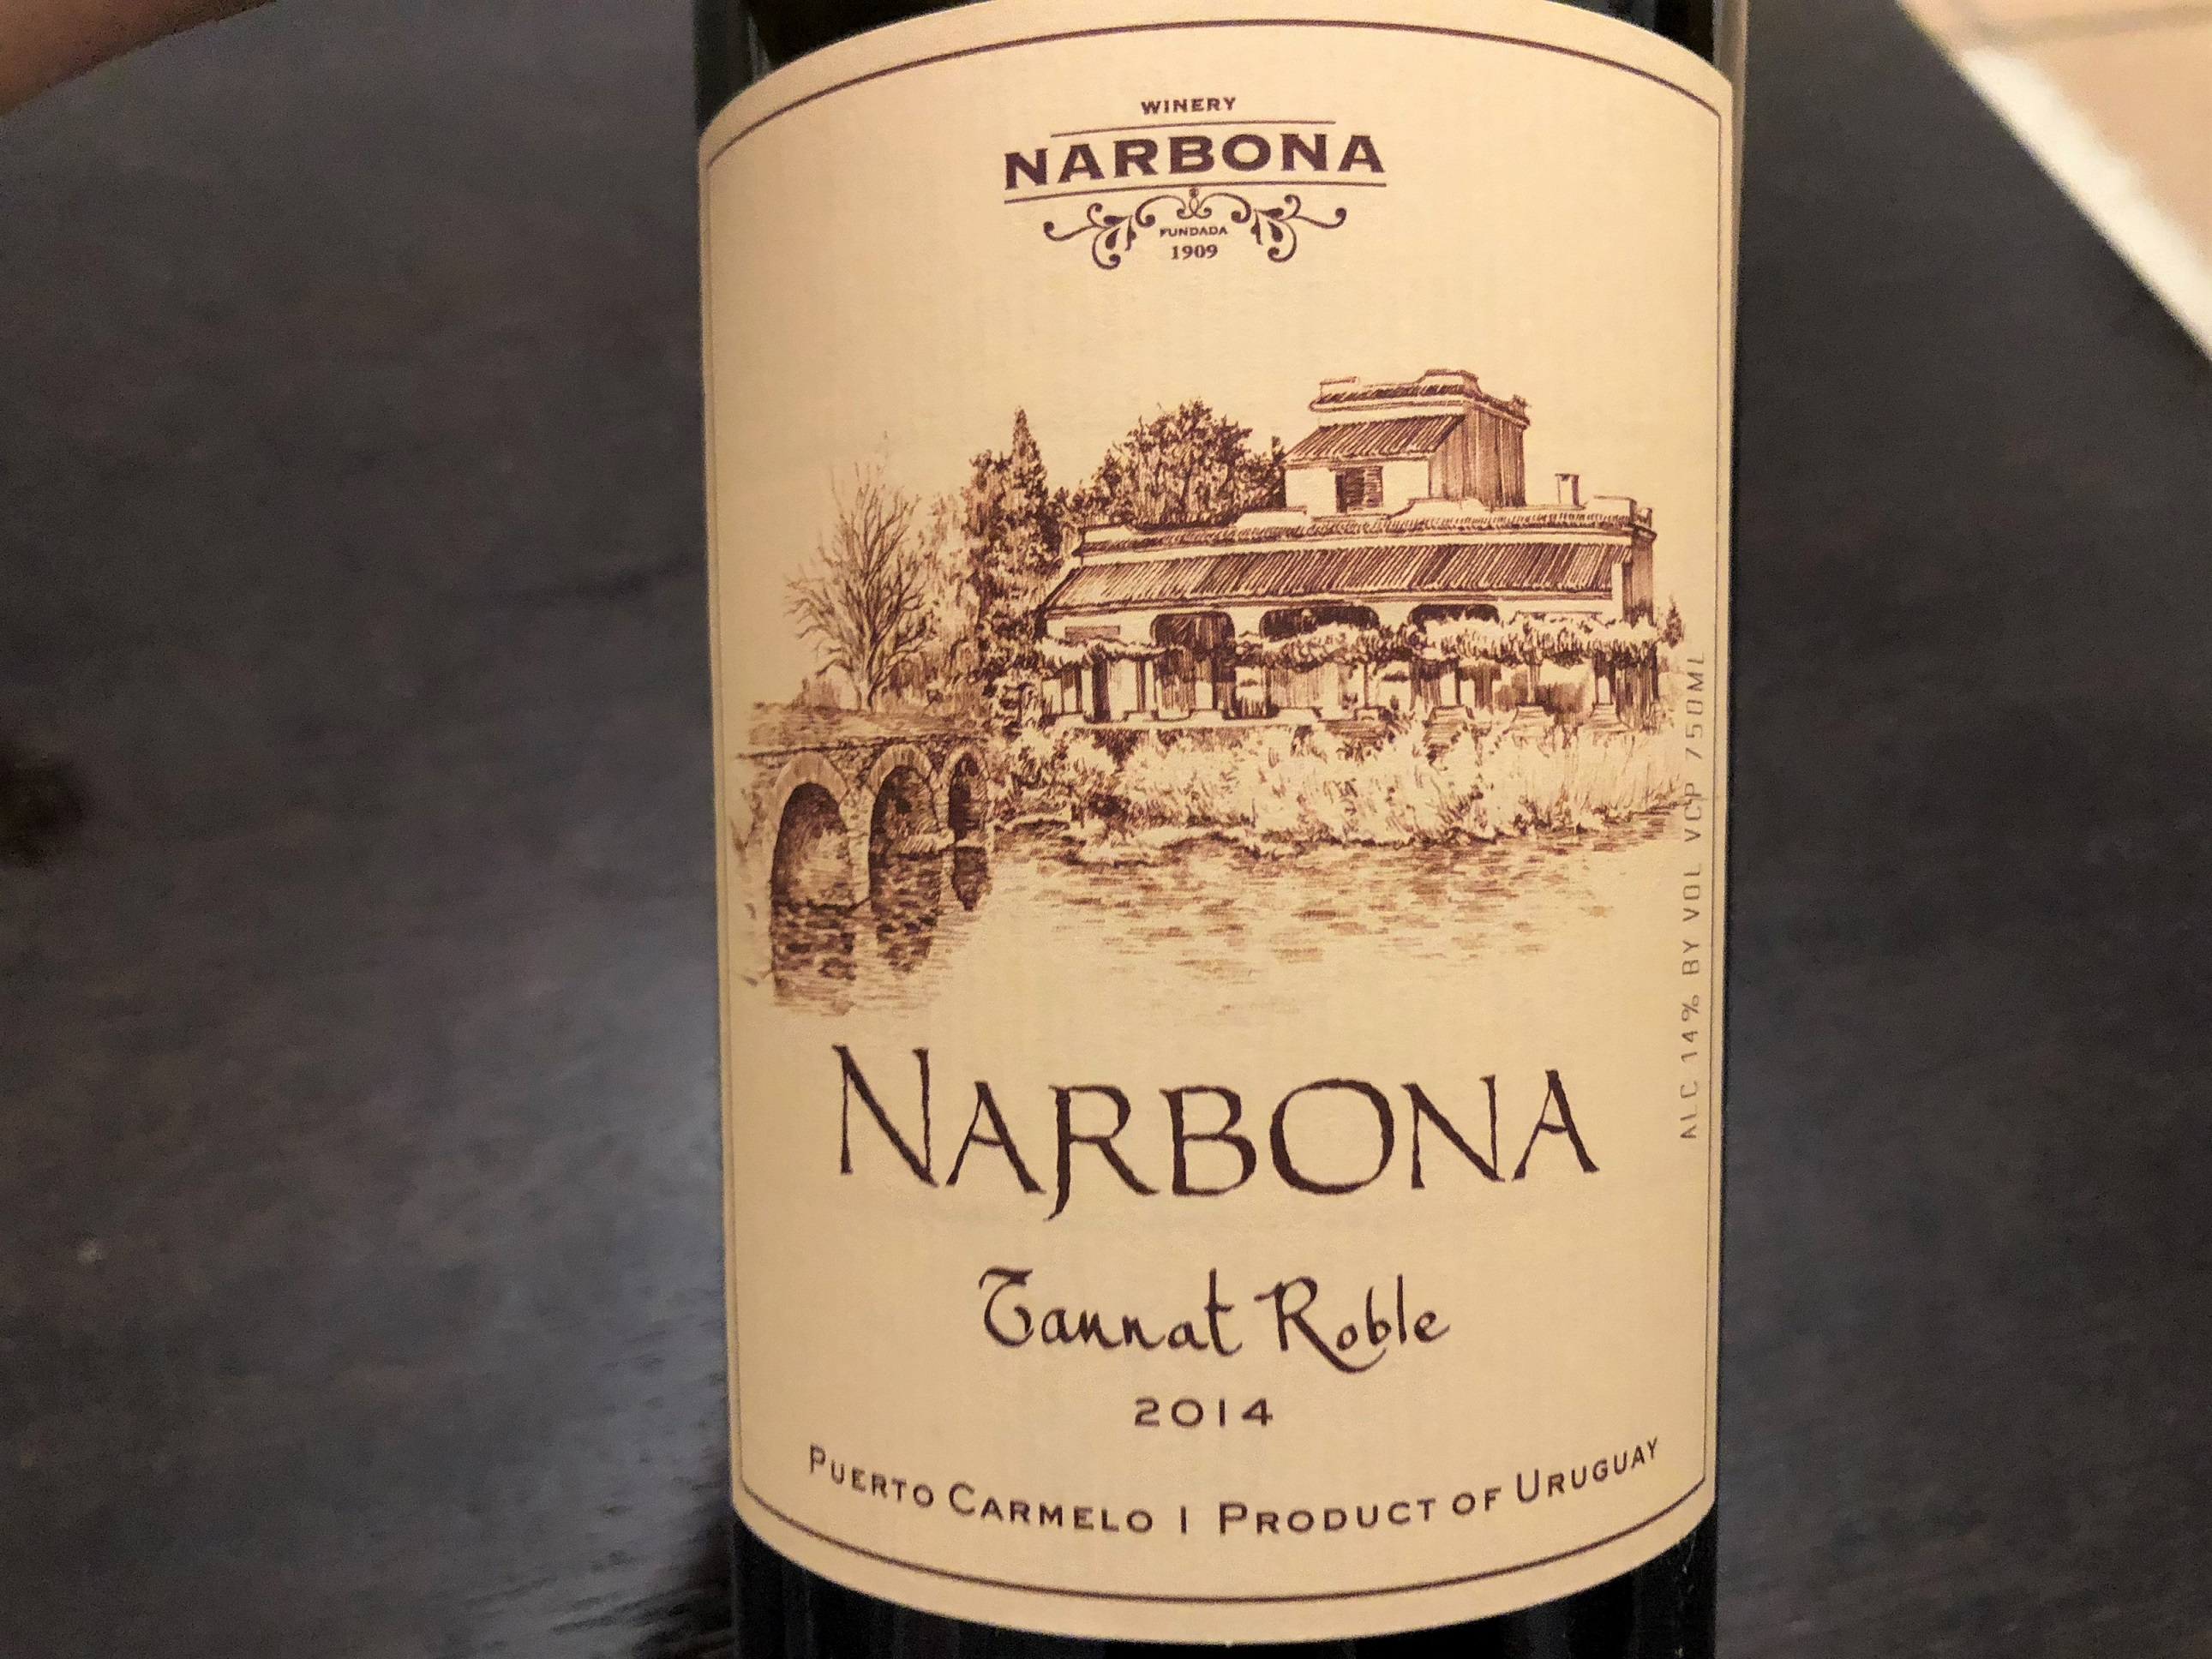 Narbona Tannat Roble